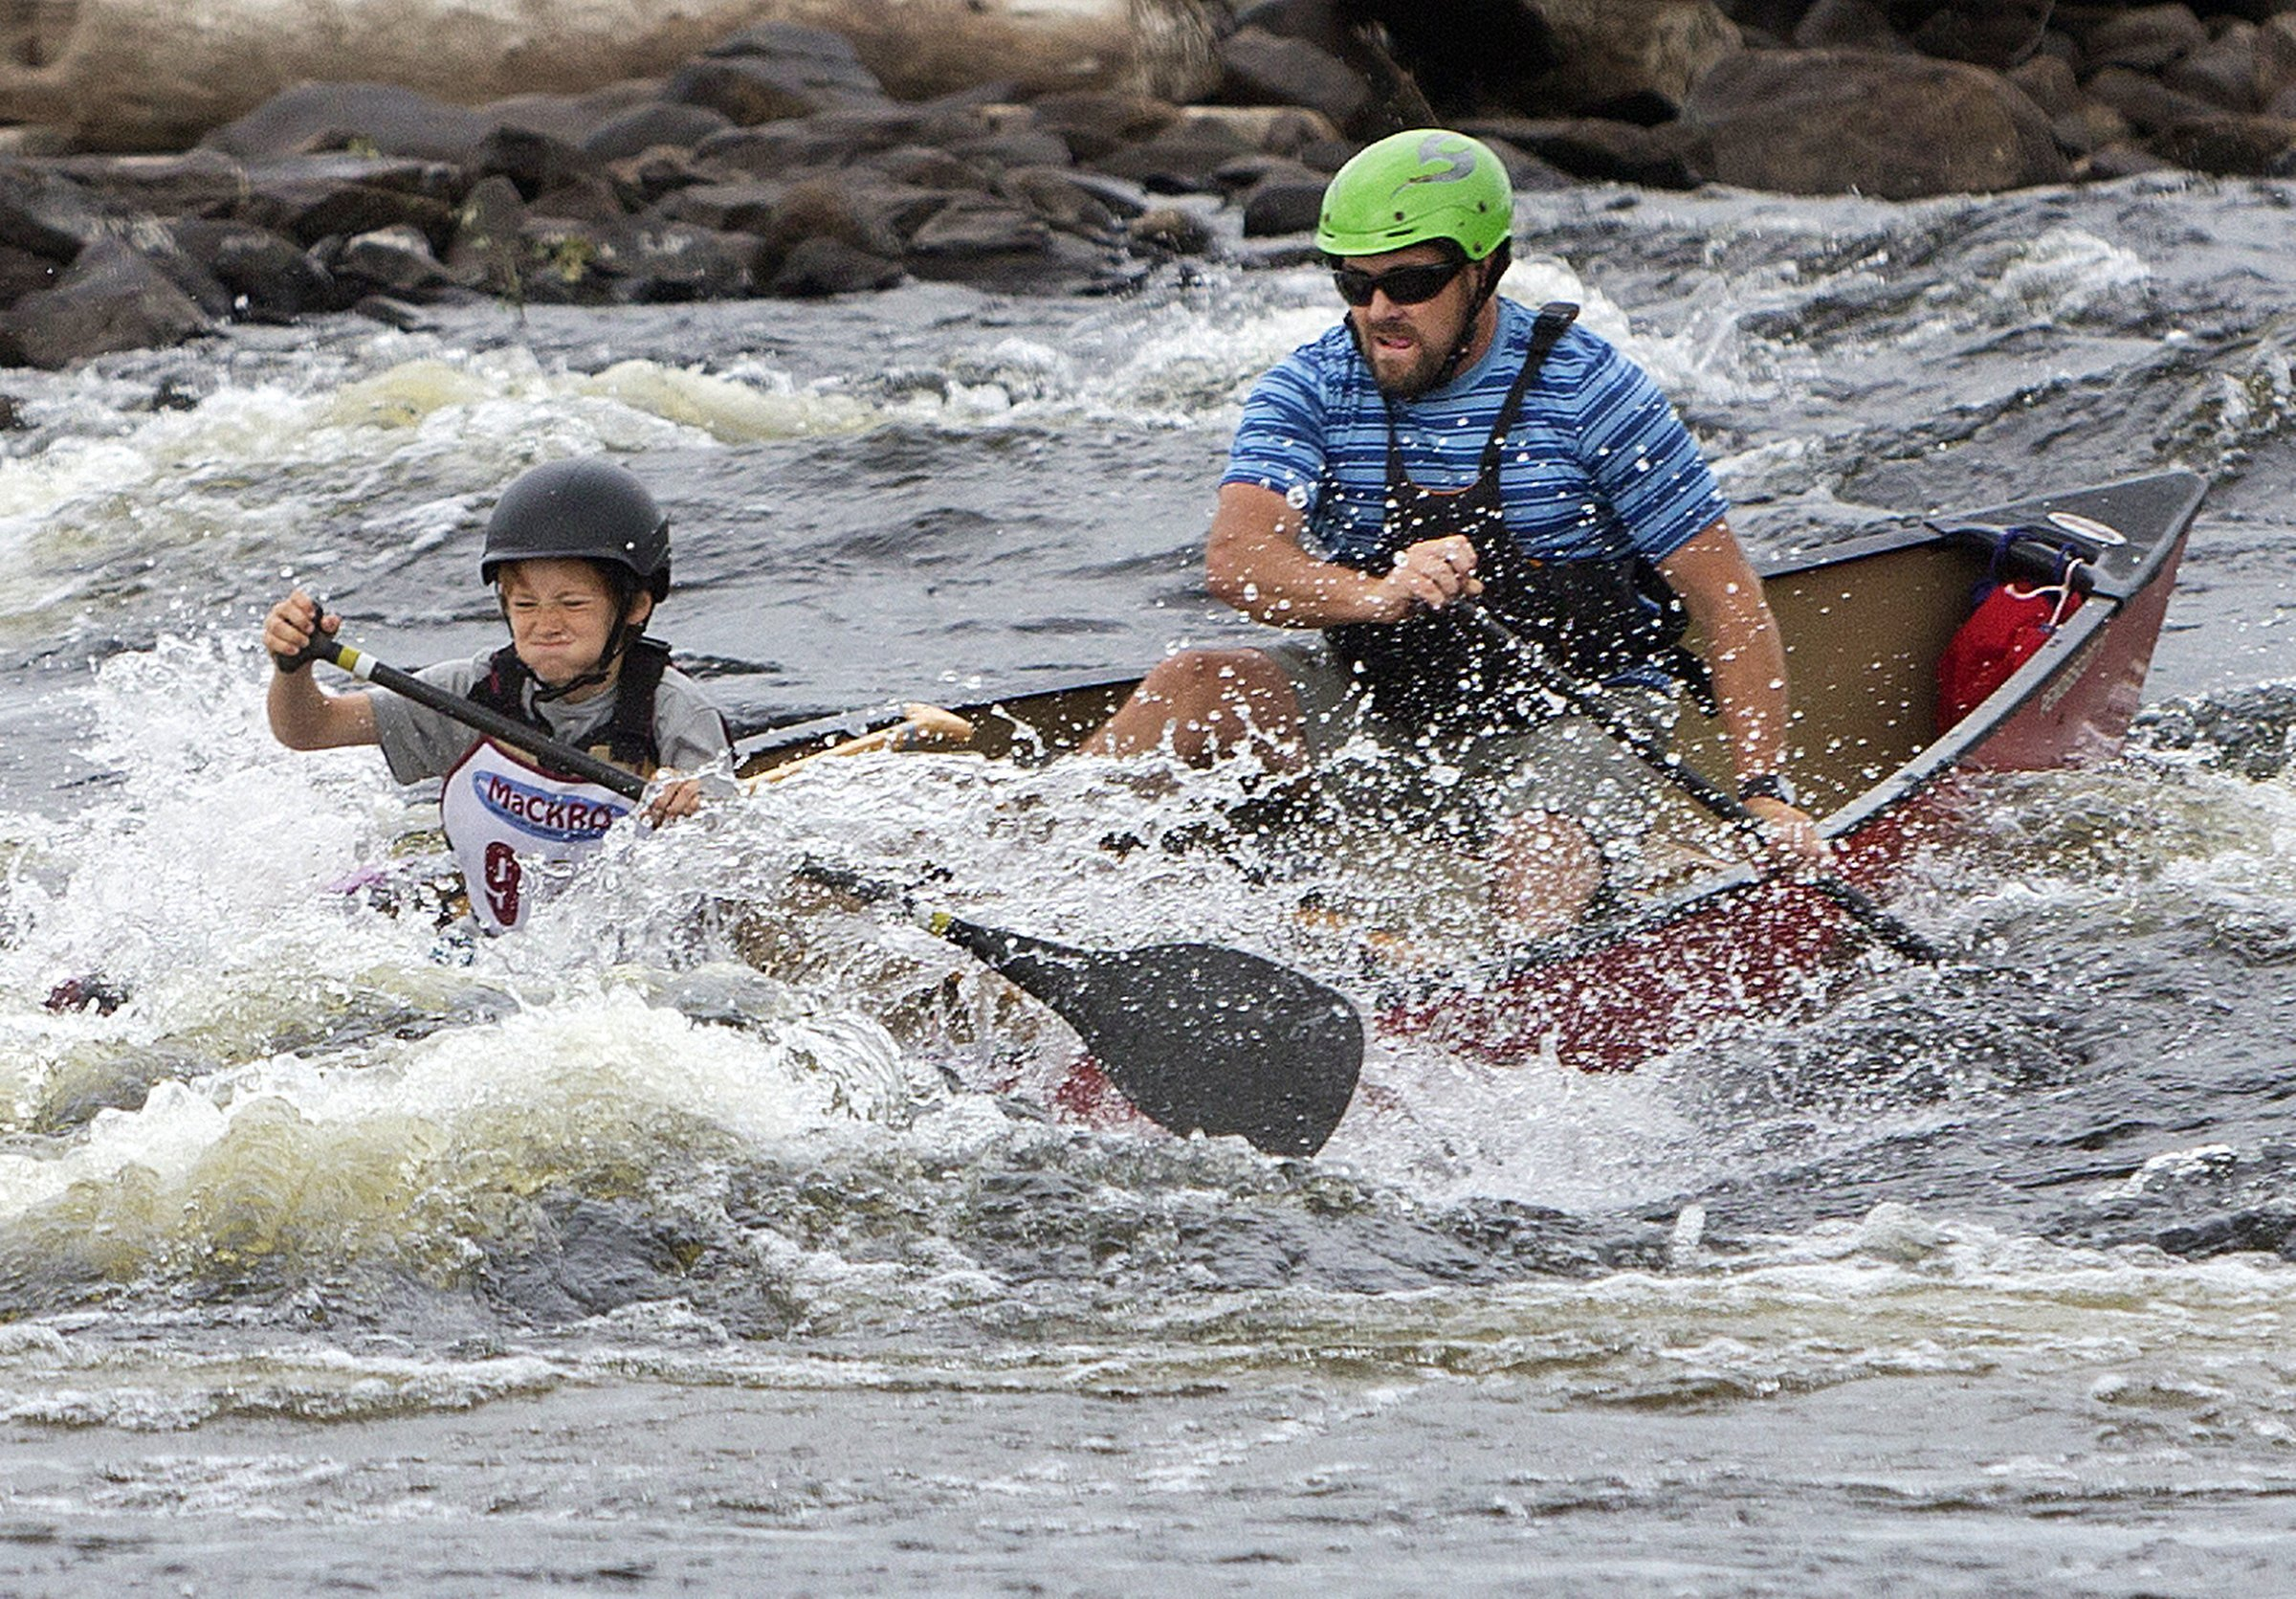 2020 Wildwater and Whitewater Open Canoe National Championships